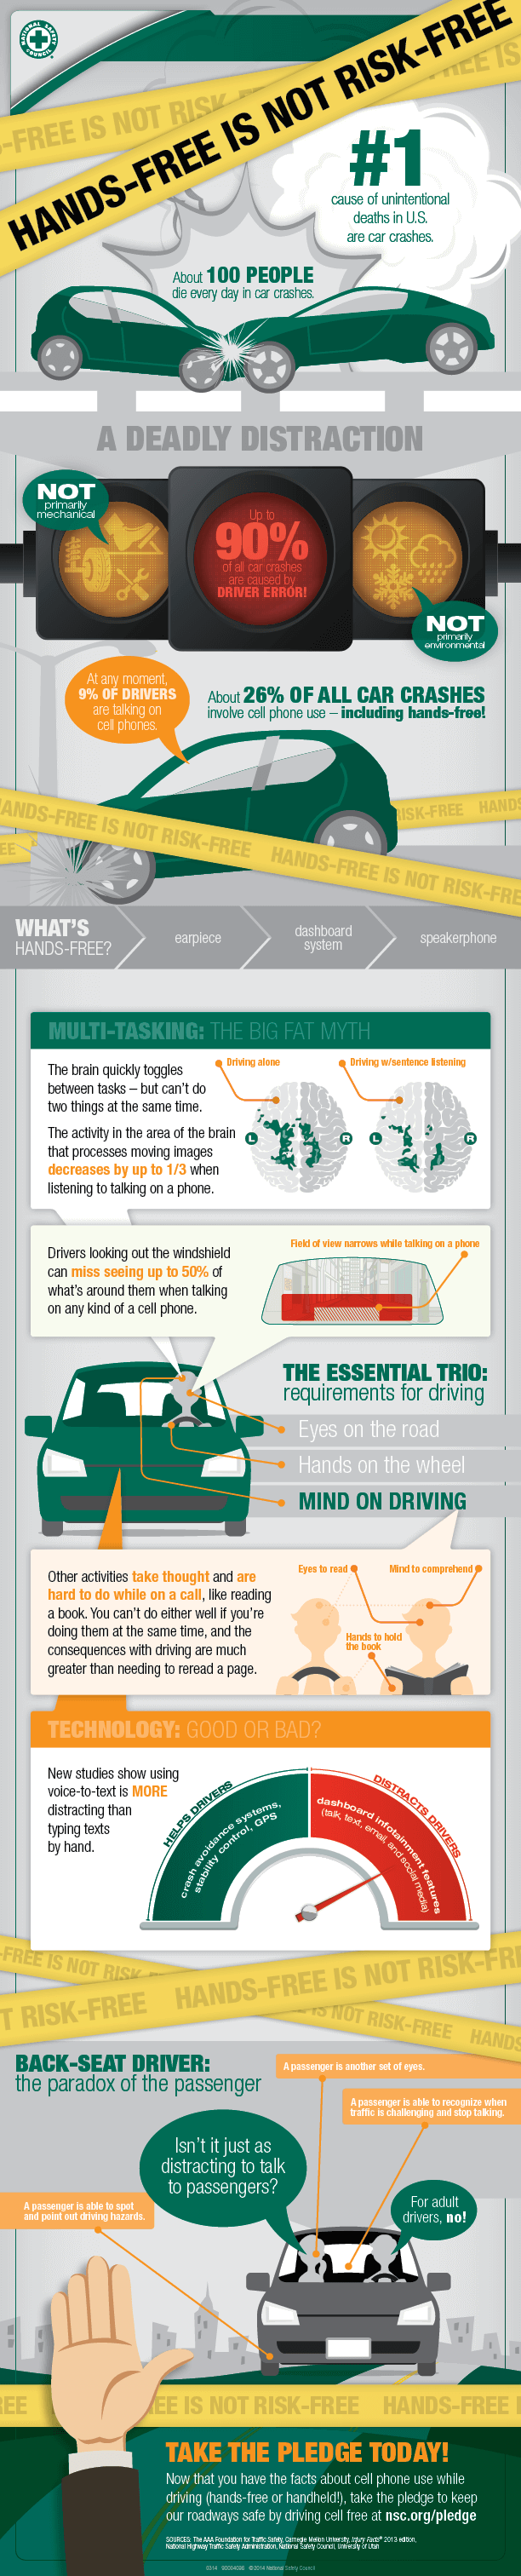 HandsFree Texting Isn't Safe Infographic